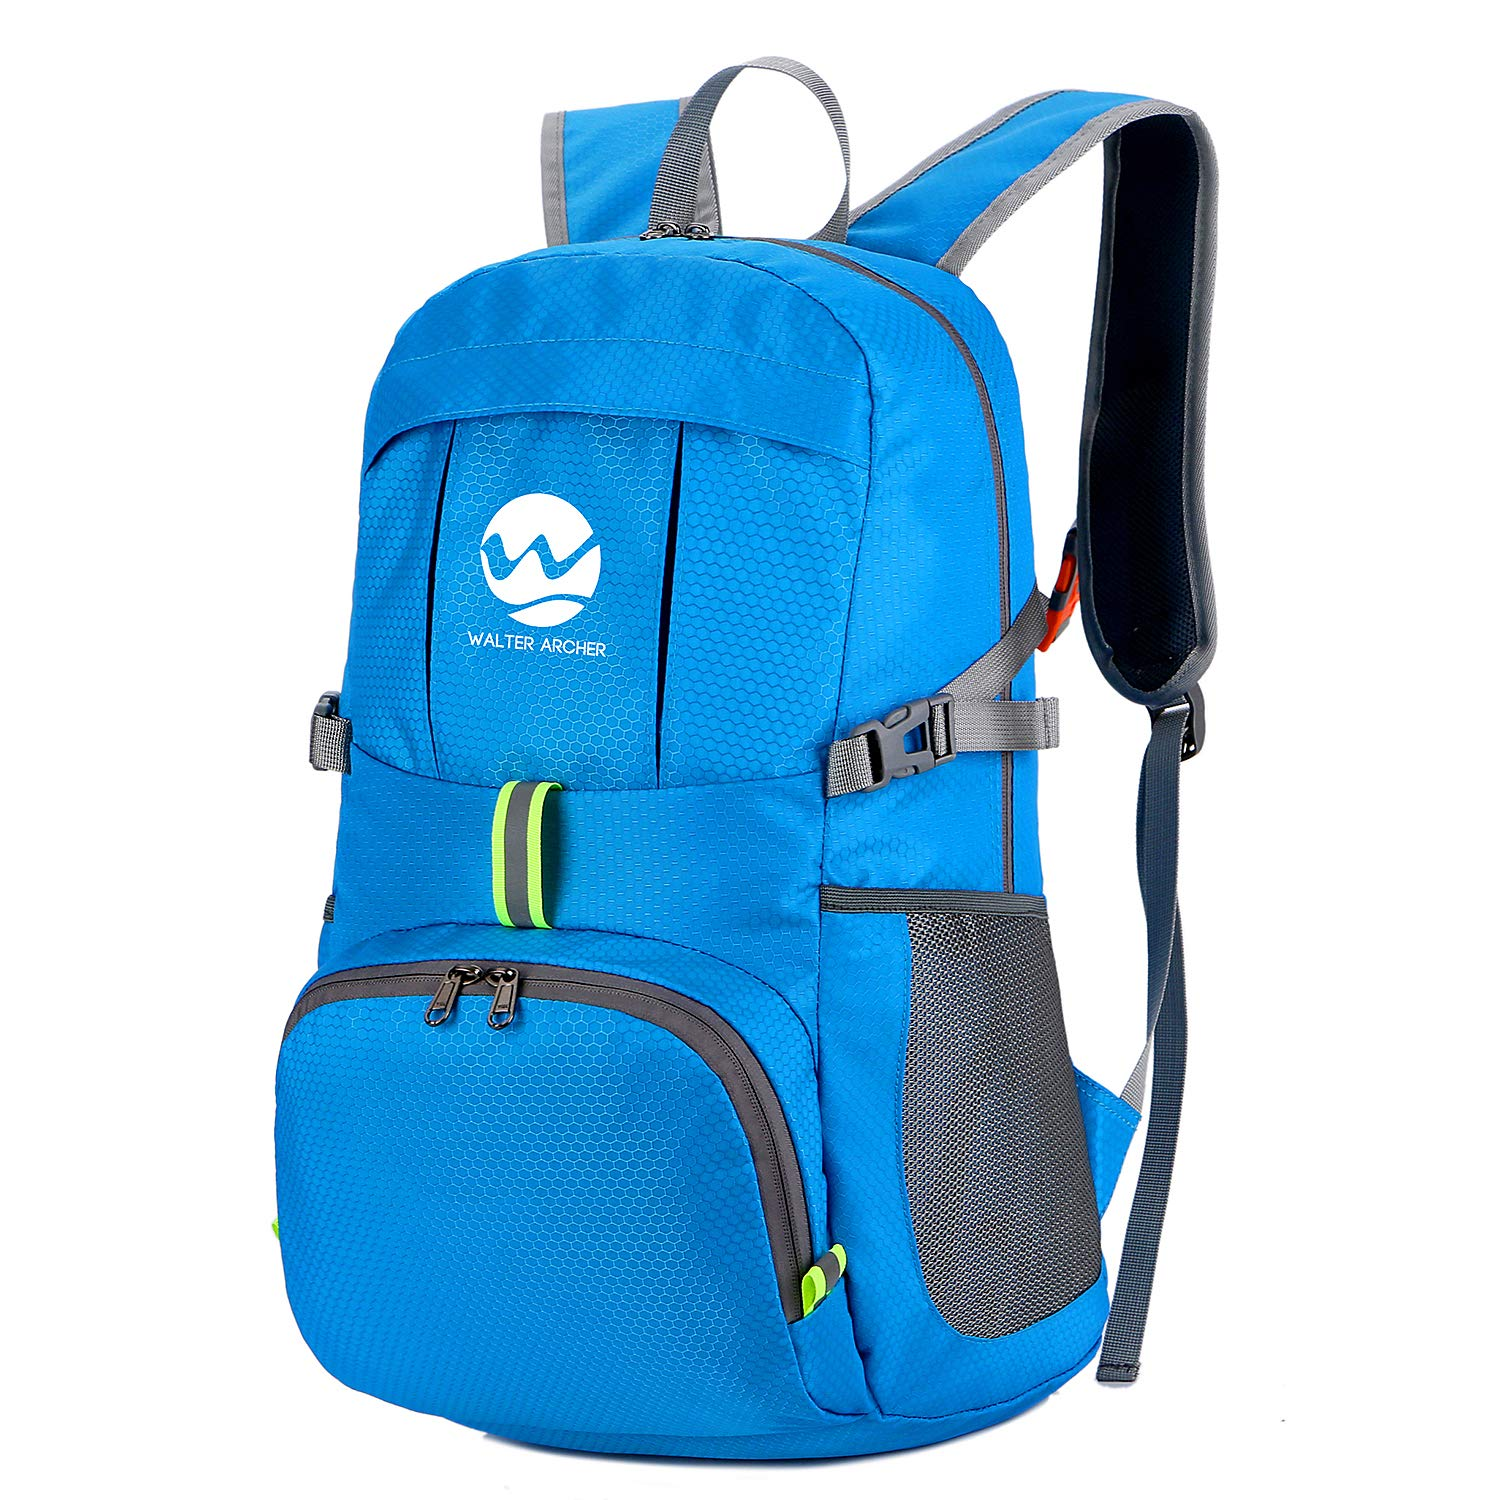 Foldable Outdoor Camping Hiking Backpack Casual Daypack for Men Women Durable 35L Travel Backpack Water Resistant Kebaza Lightweight Packable Backpack